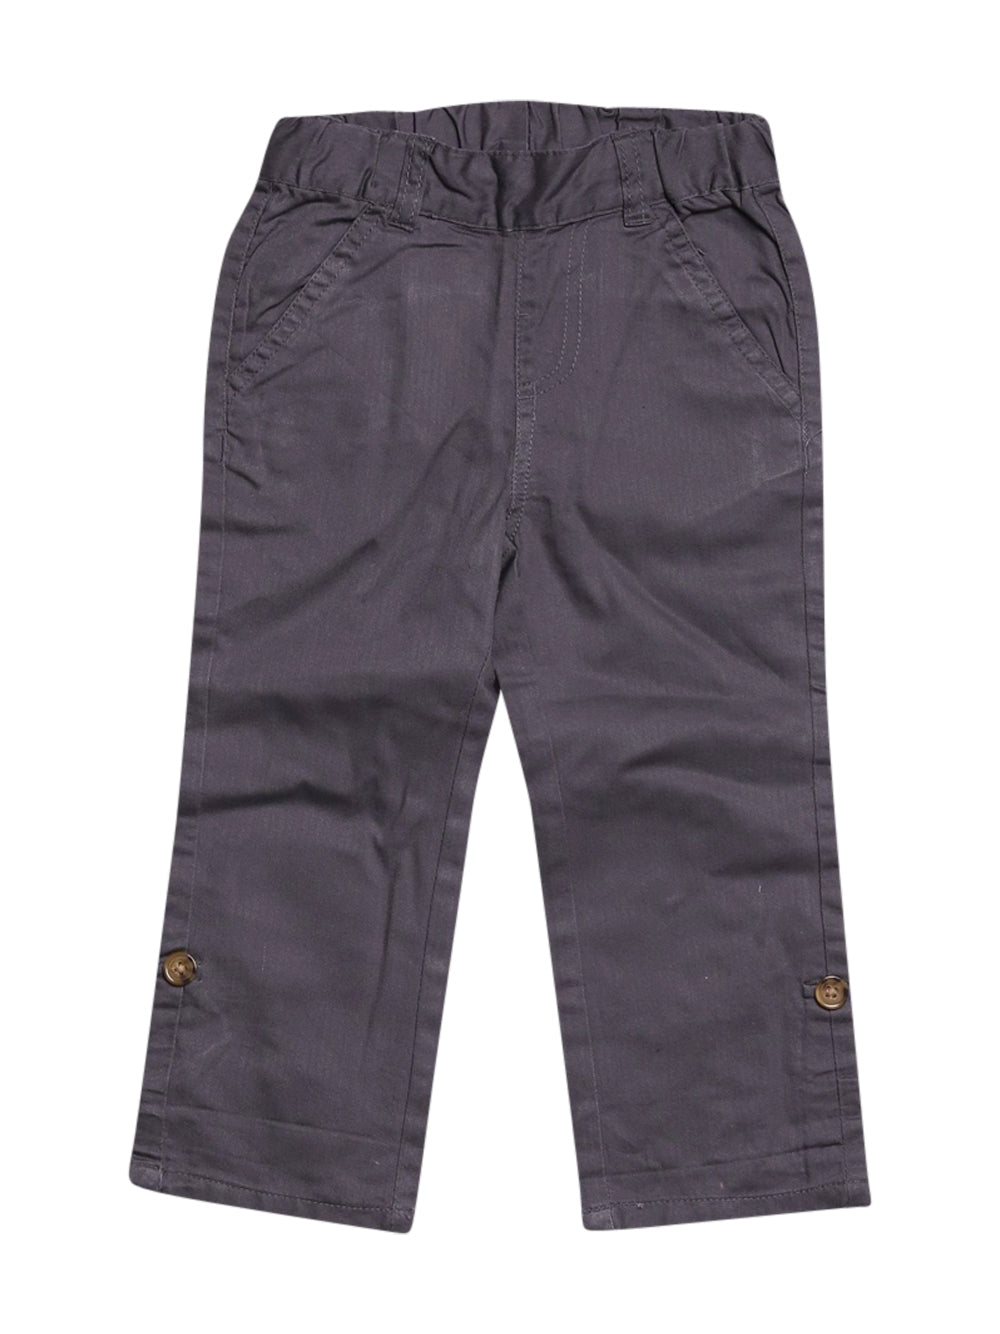 Front photo of Preloved kaibi Grey Boy's trousers - size 18-24 mths